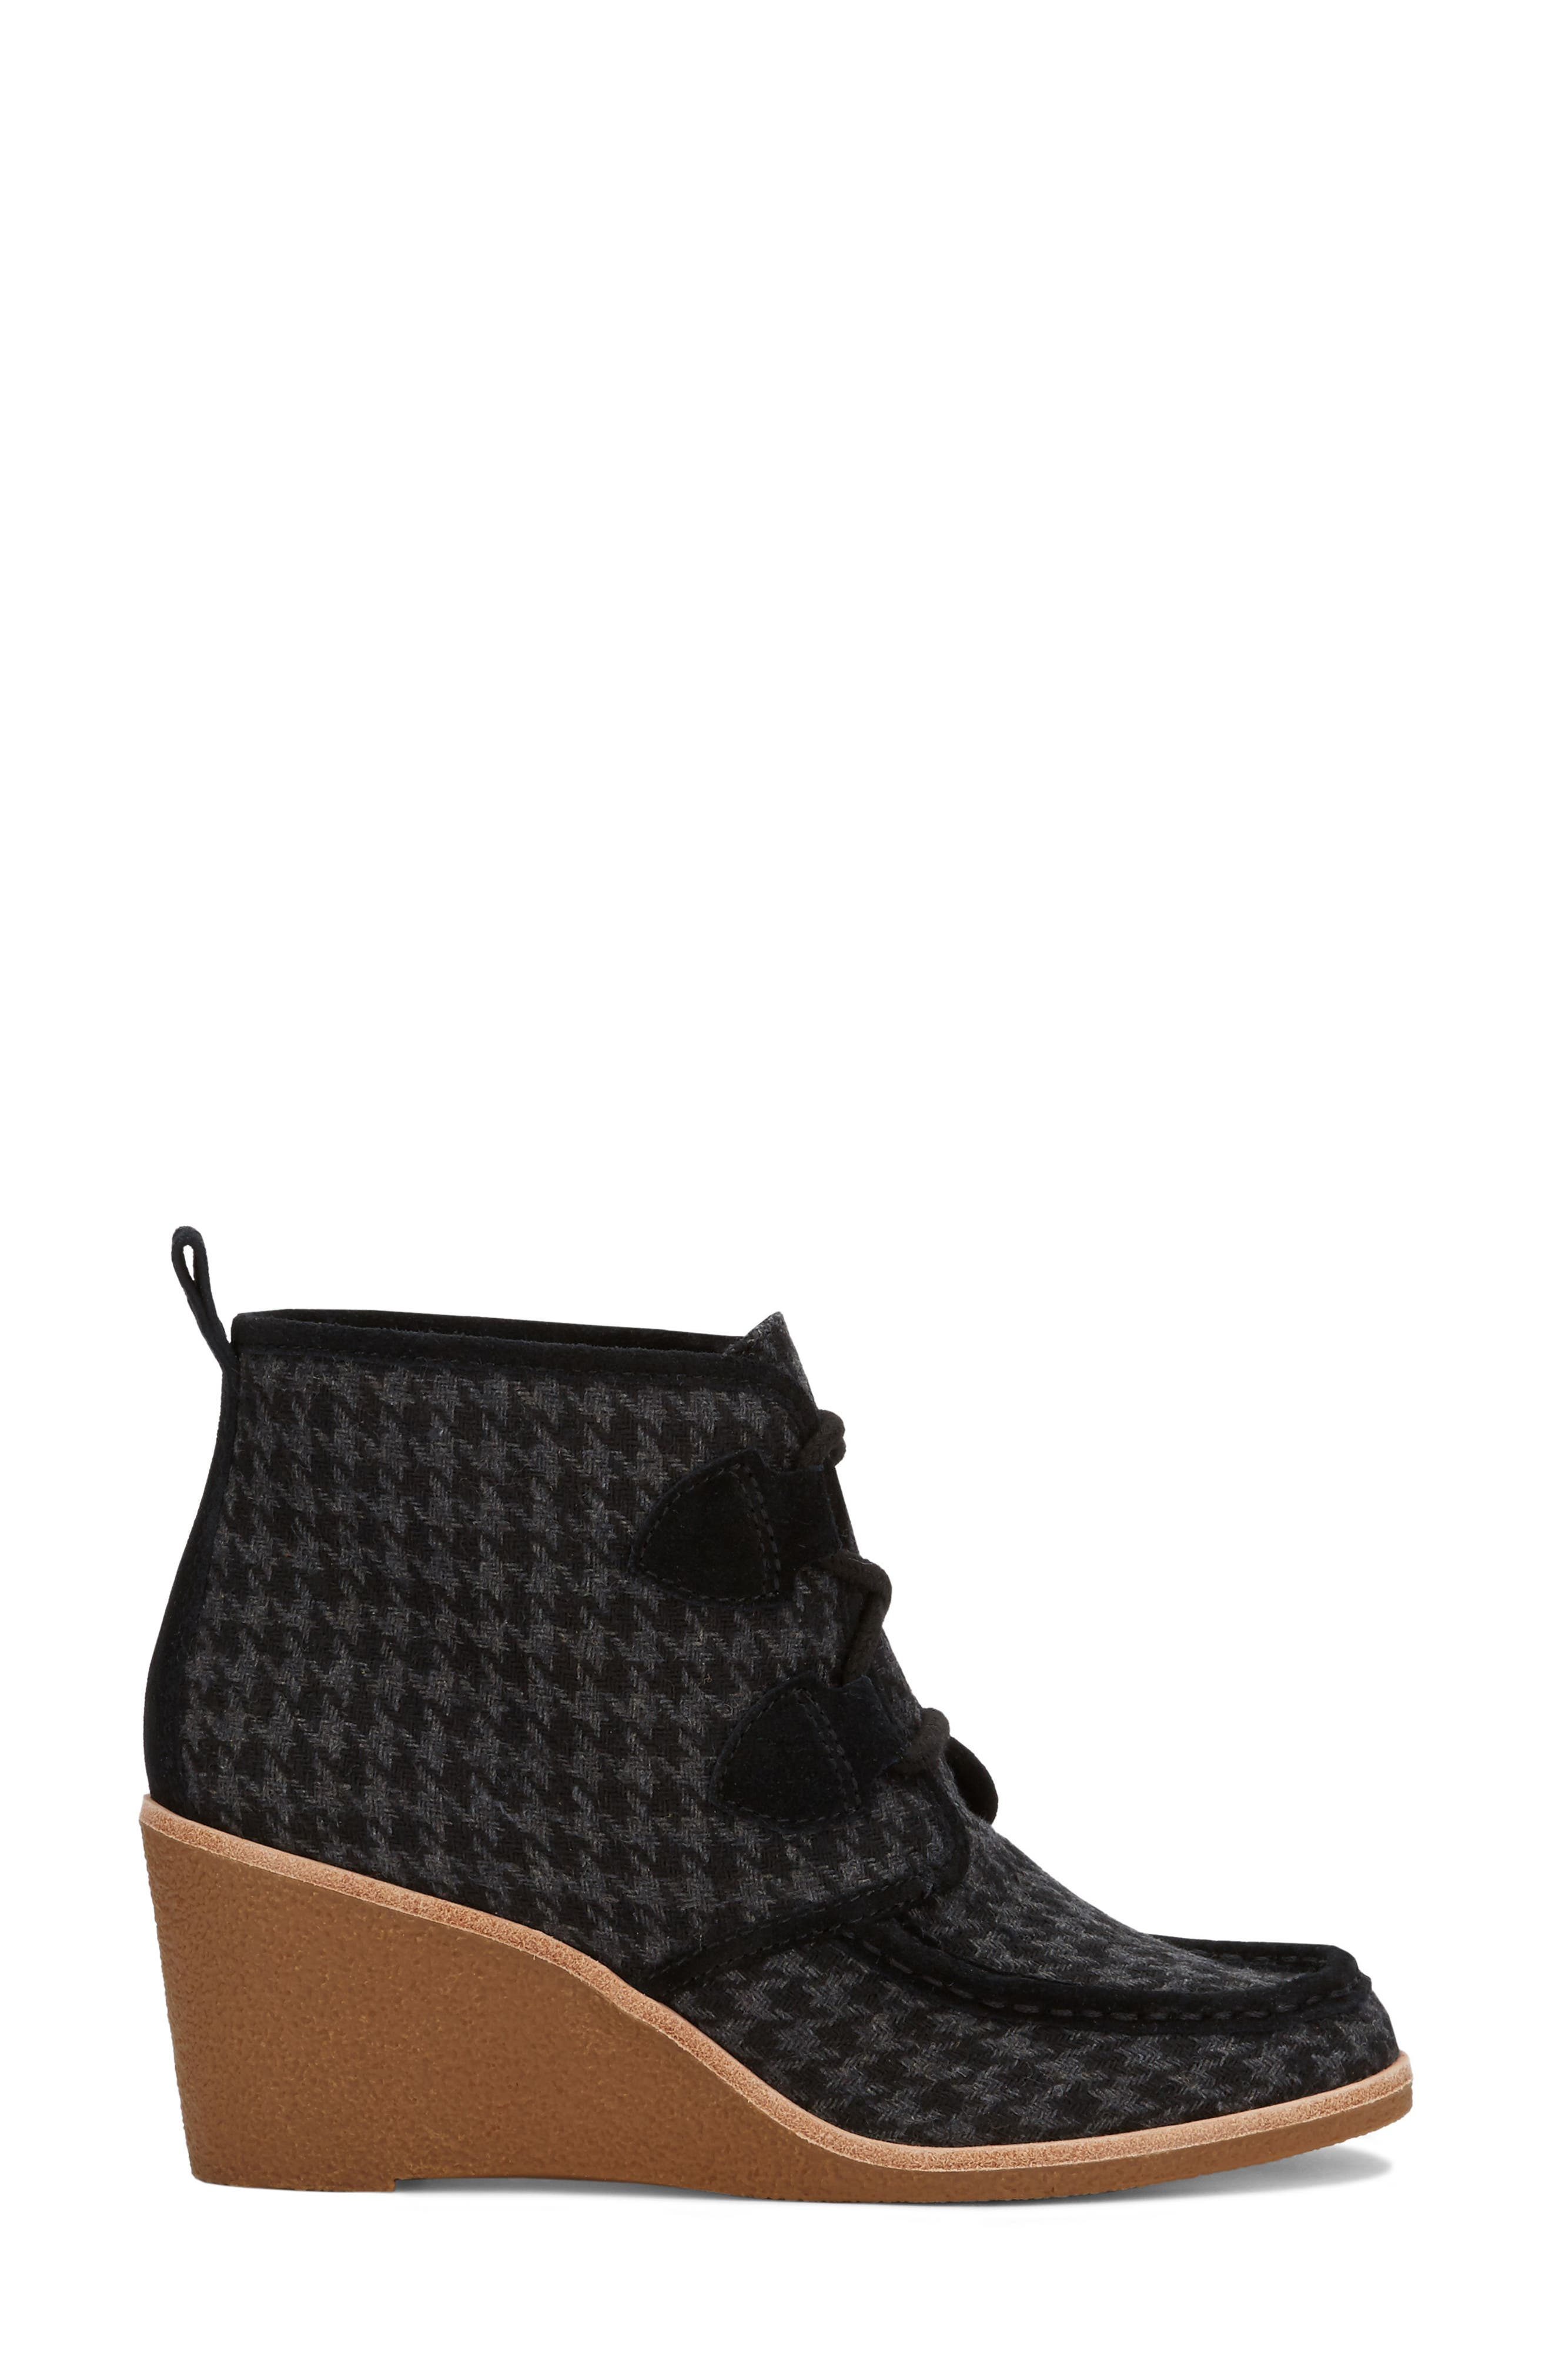 Rosa Wedge Bootie,                             Alternate thumbnail 3, color,                             Black Houndstooth Fabric